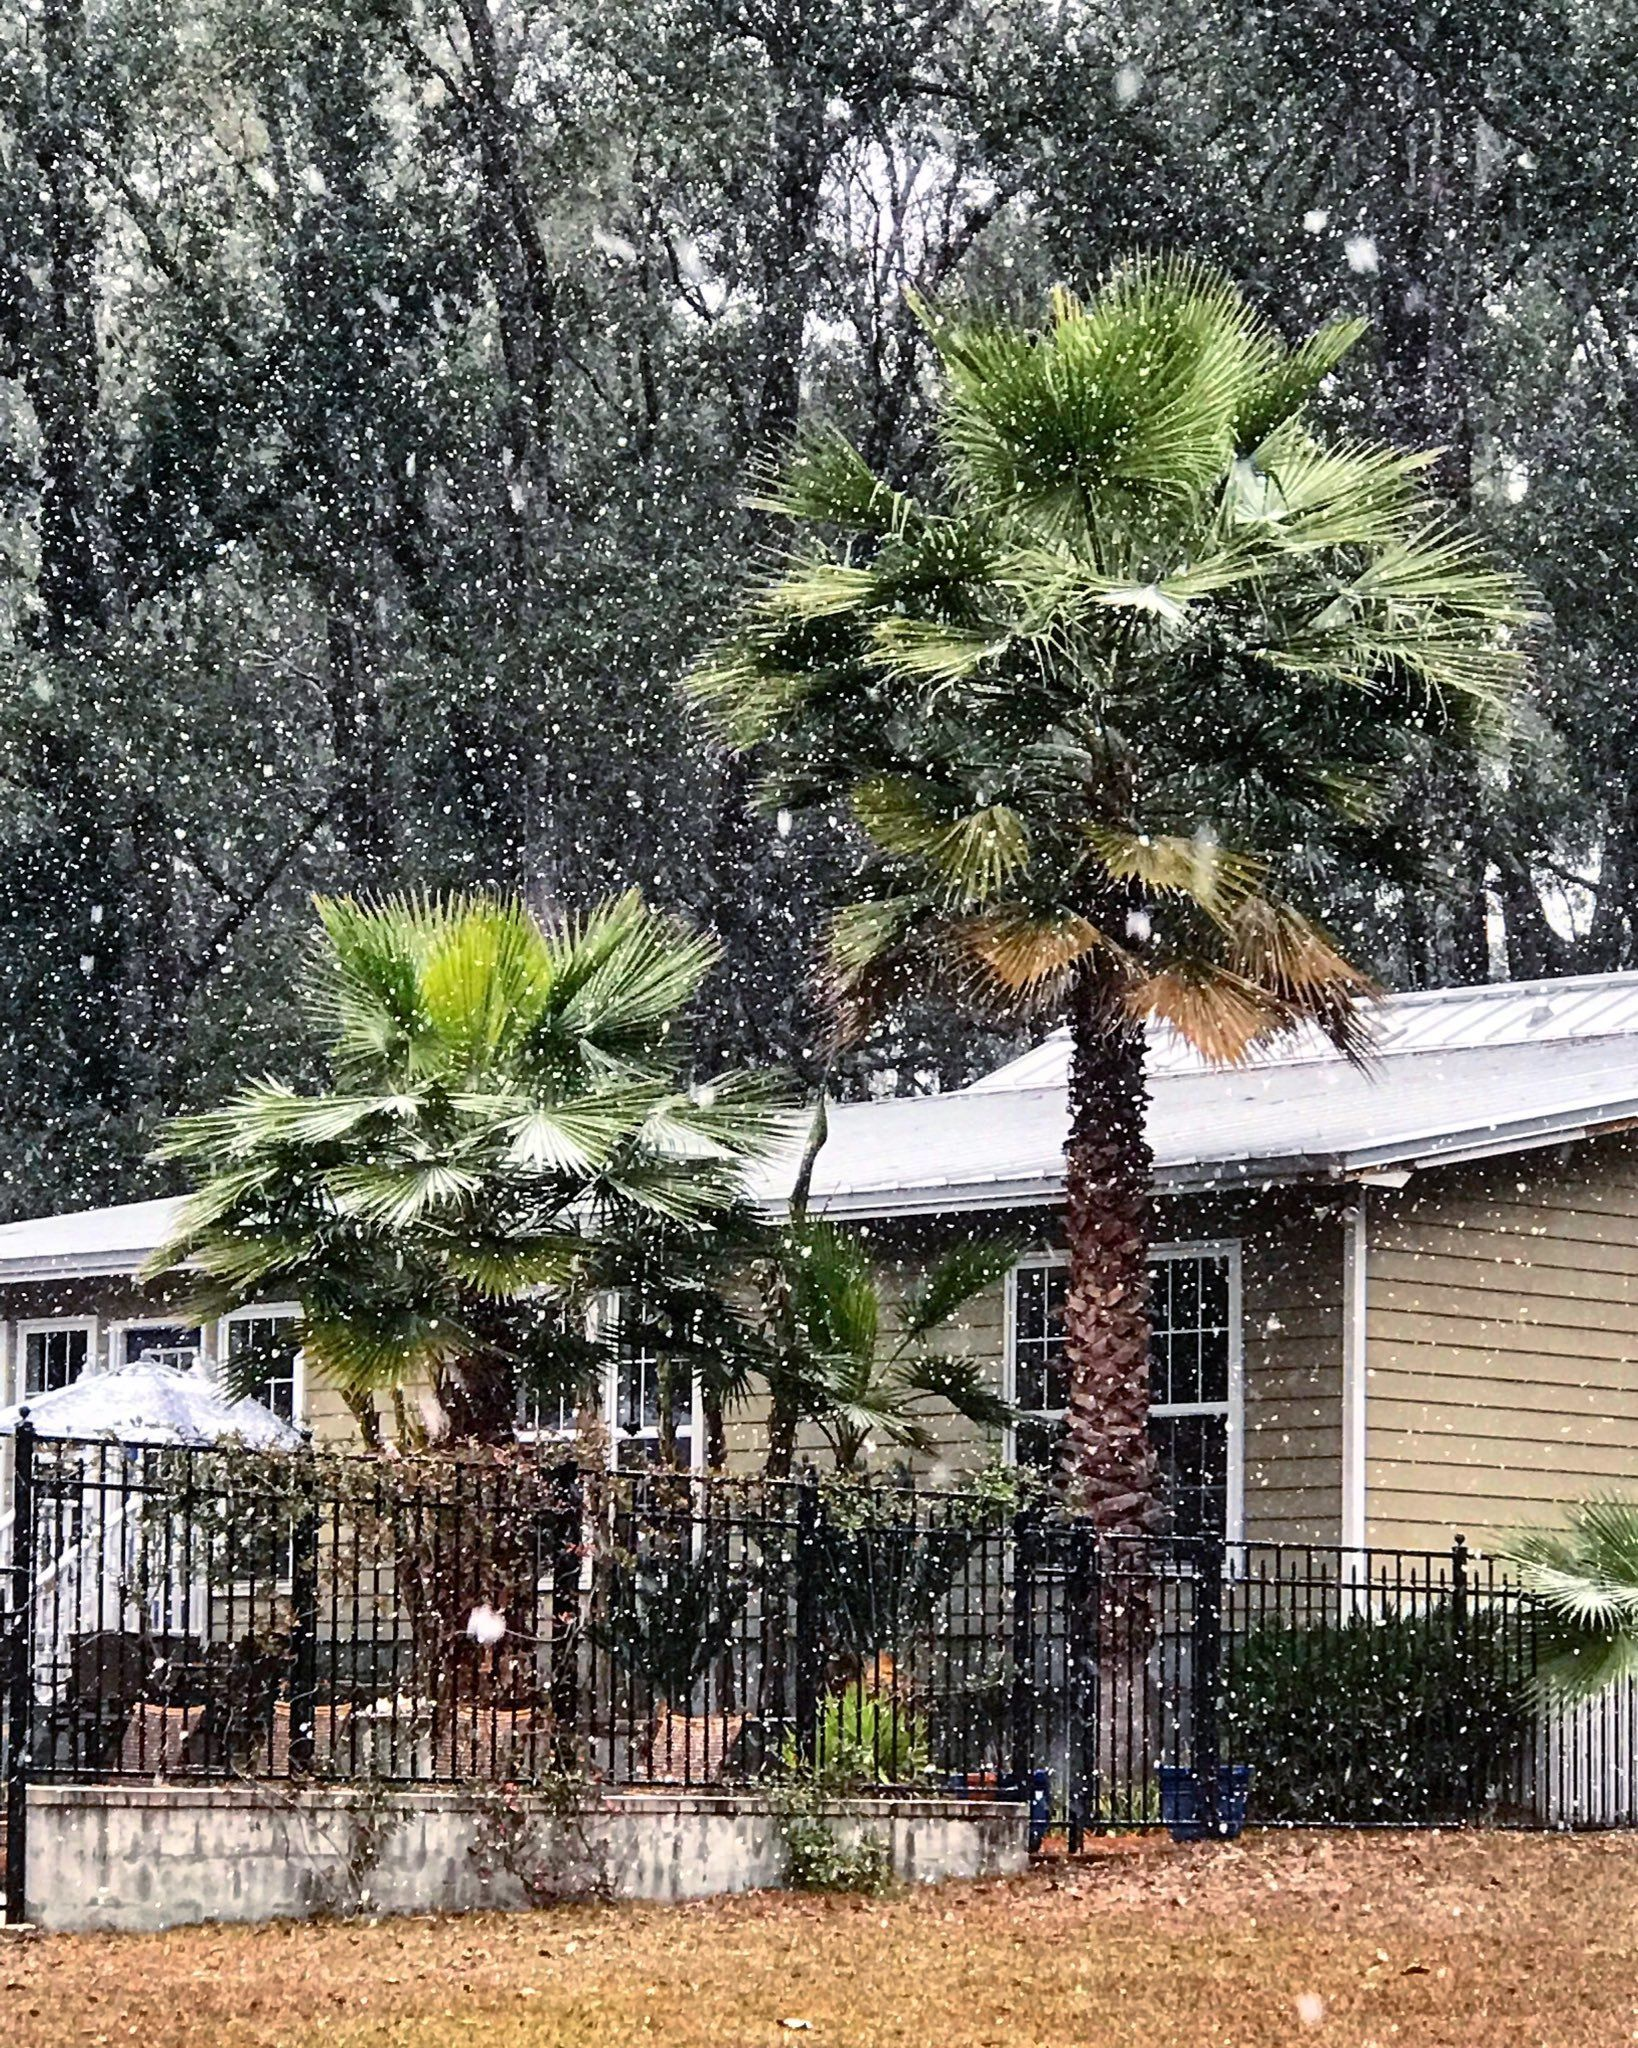 Storm system brings snow, ice to Florida